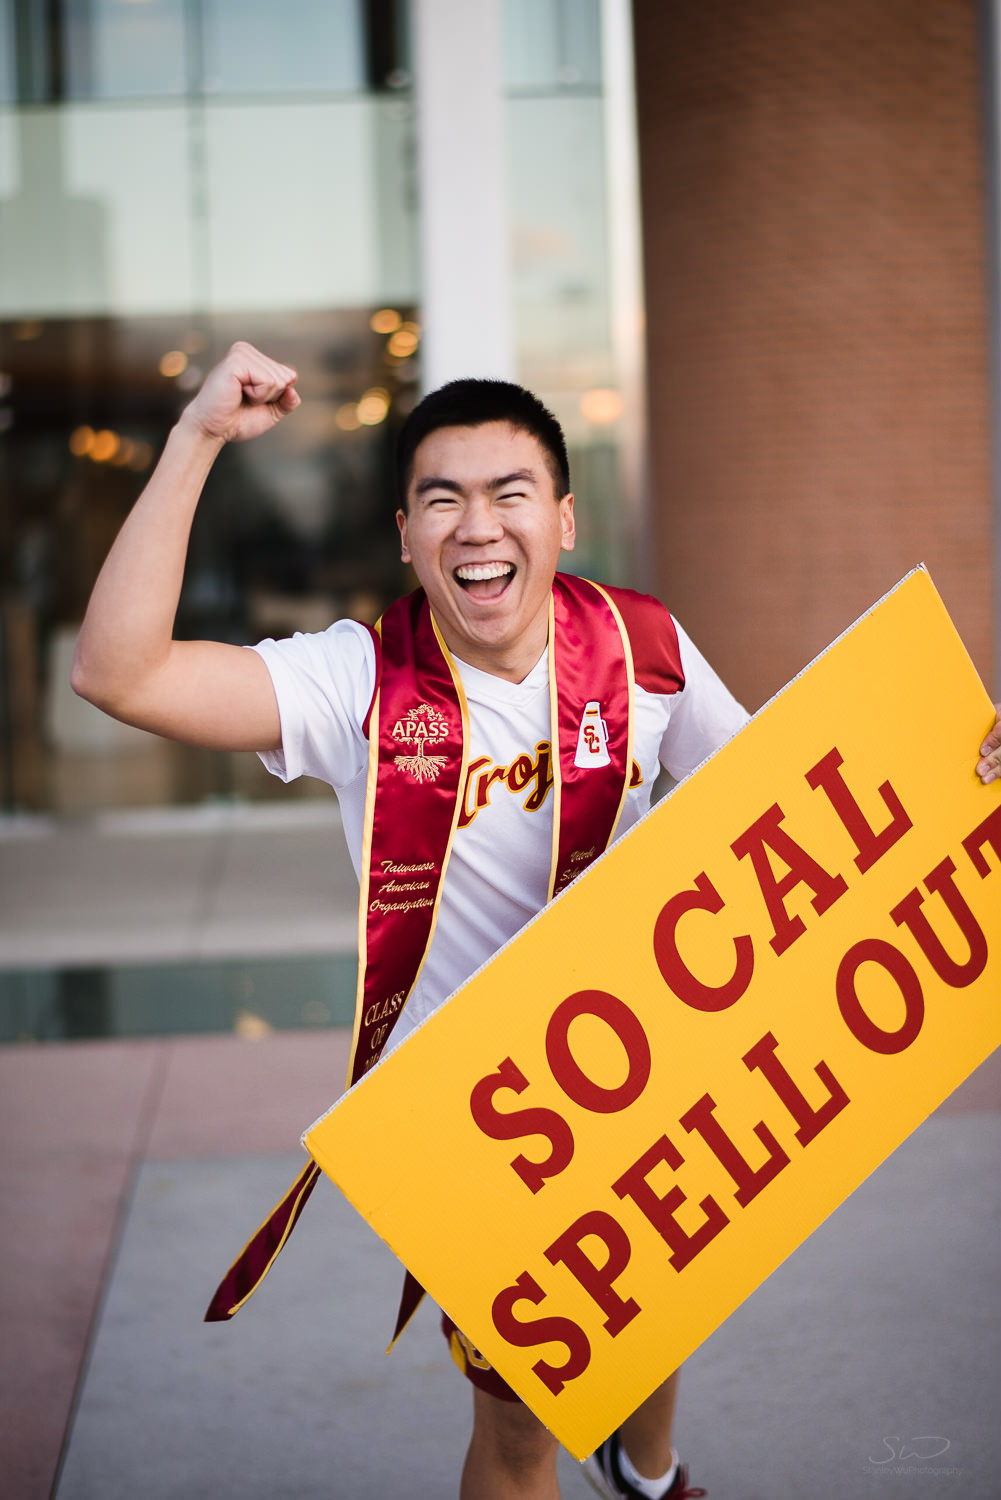 USC college senior graduate posing with spirit team sign by Stanley Wu Photography | Portrait & Wedding Photographer serving Los Angeles, Orange County, and Southern California